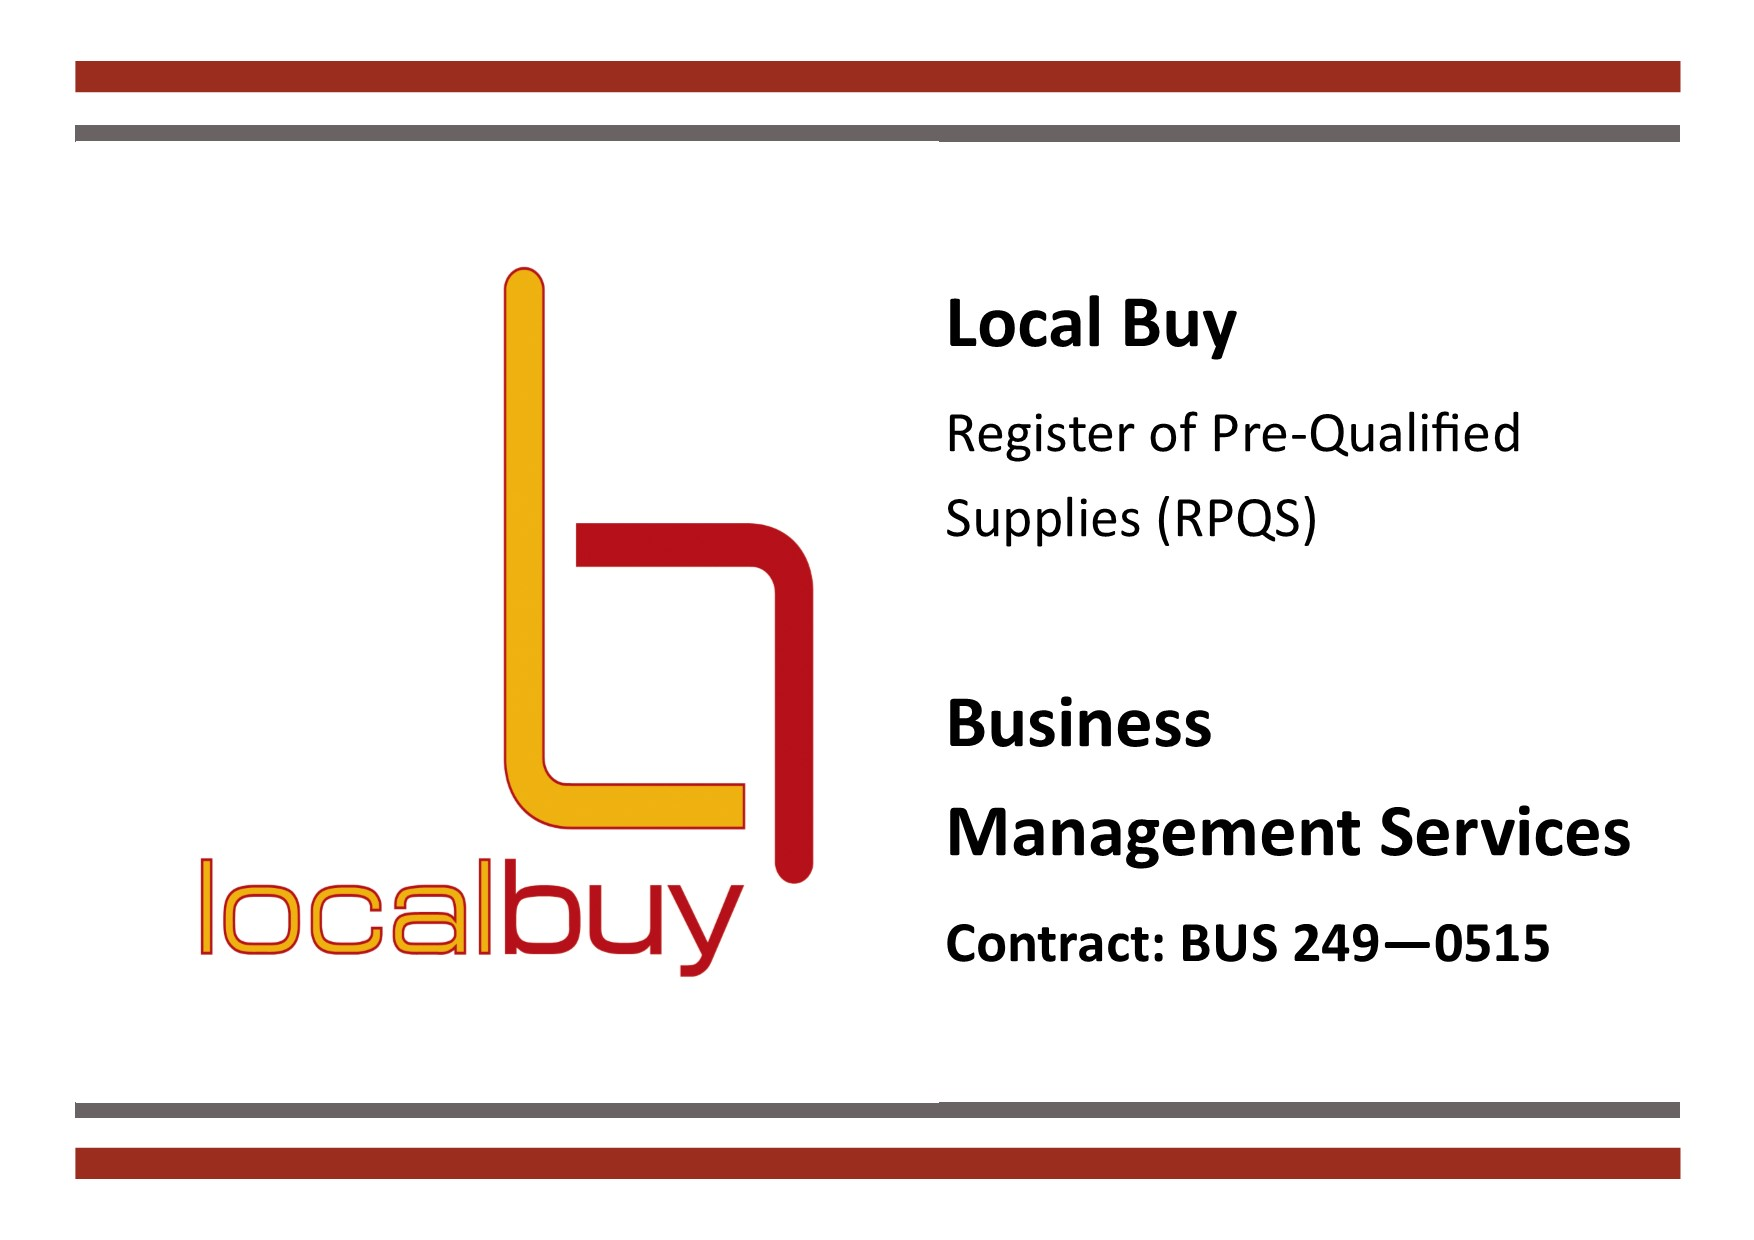 Merit Solutions - Local Buy Pre-Qualified Supplier Business Management Services BUS 249-0515